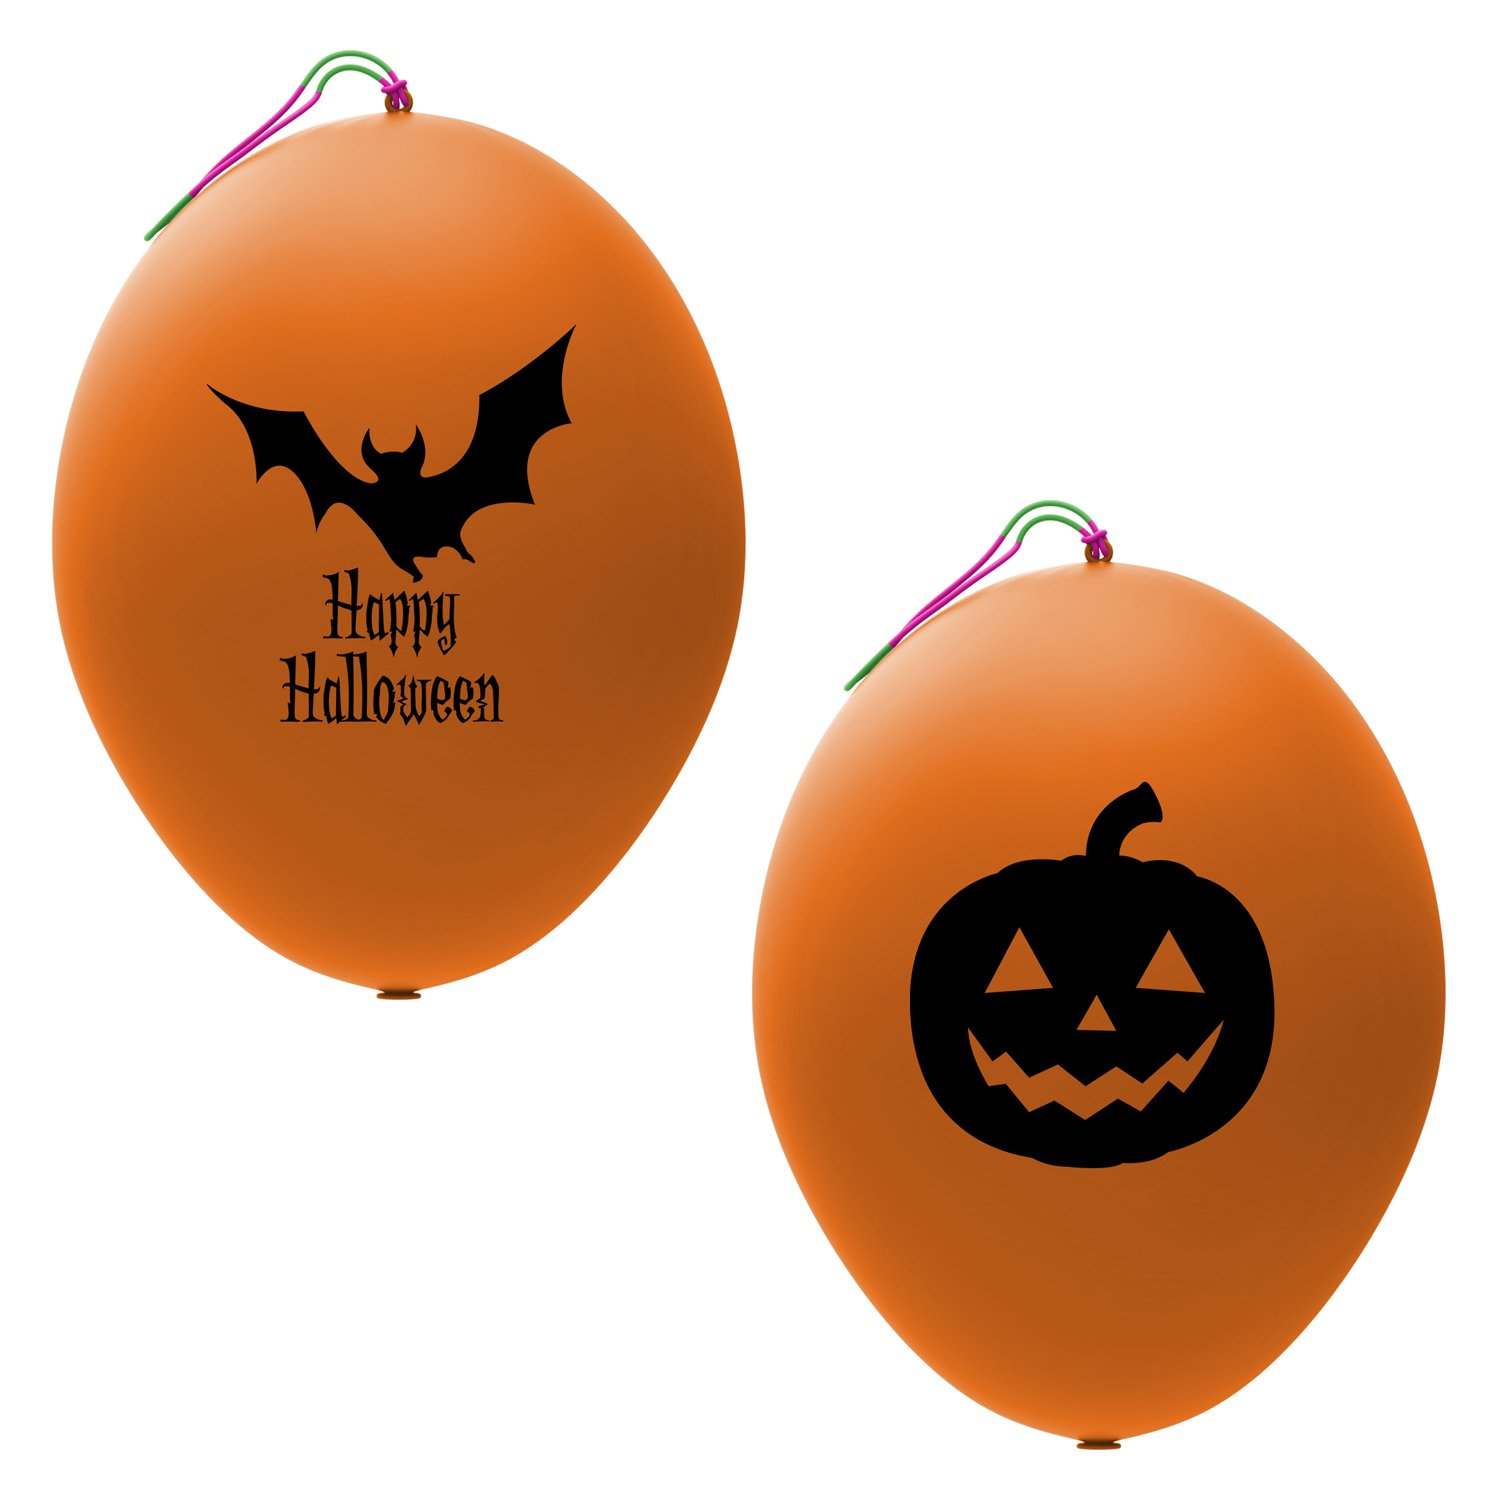 24 Orange Halloween Punch Balloons | Best for Party Favors | Gift Bags | Trick or Treat Prizes | 12 Each of Bat and Jack O Lantern Designs | Extra Large, Eco Friendly Latex Punch Balls for Kids John & Judy